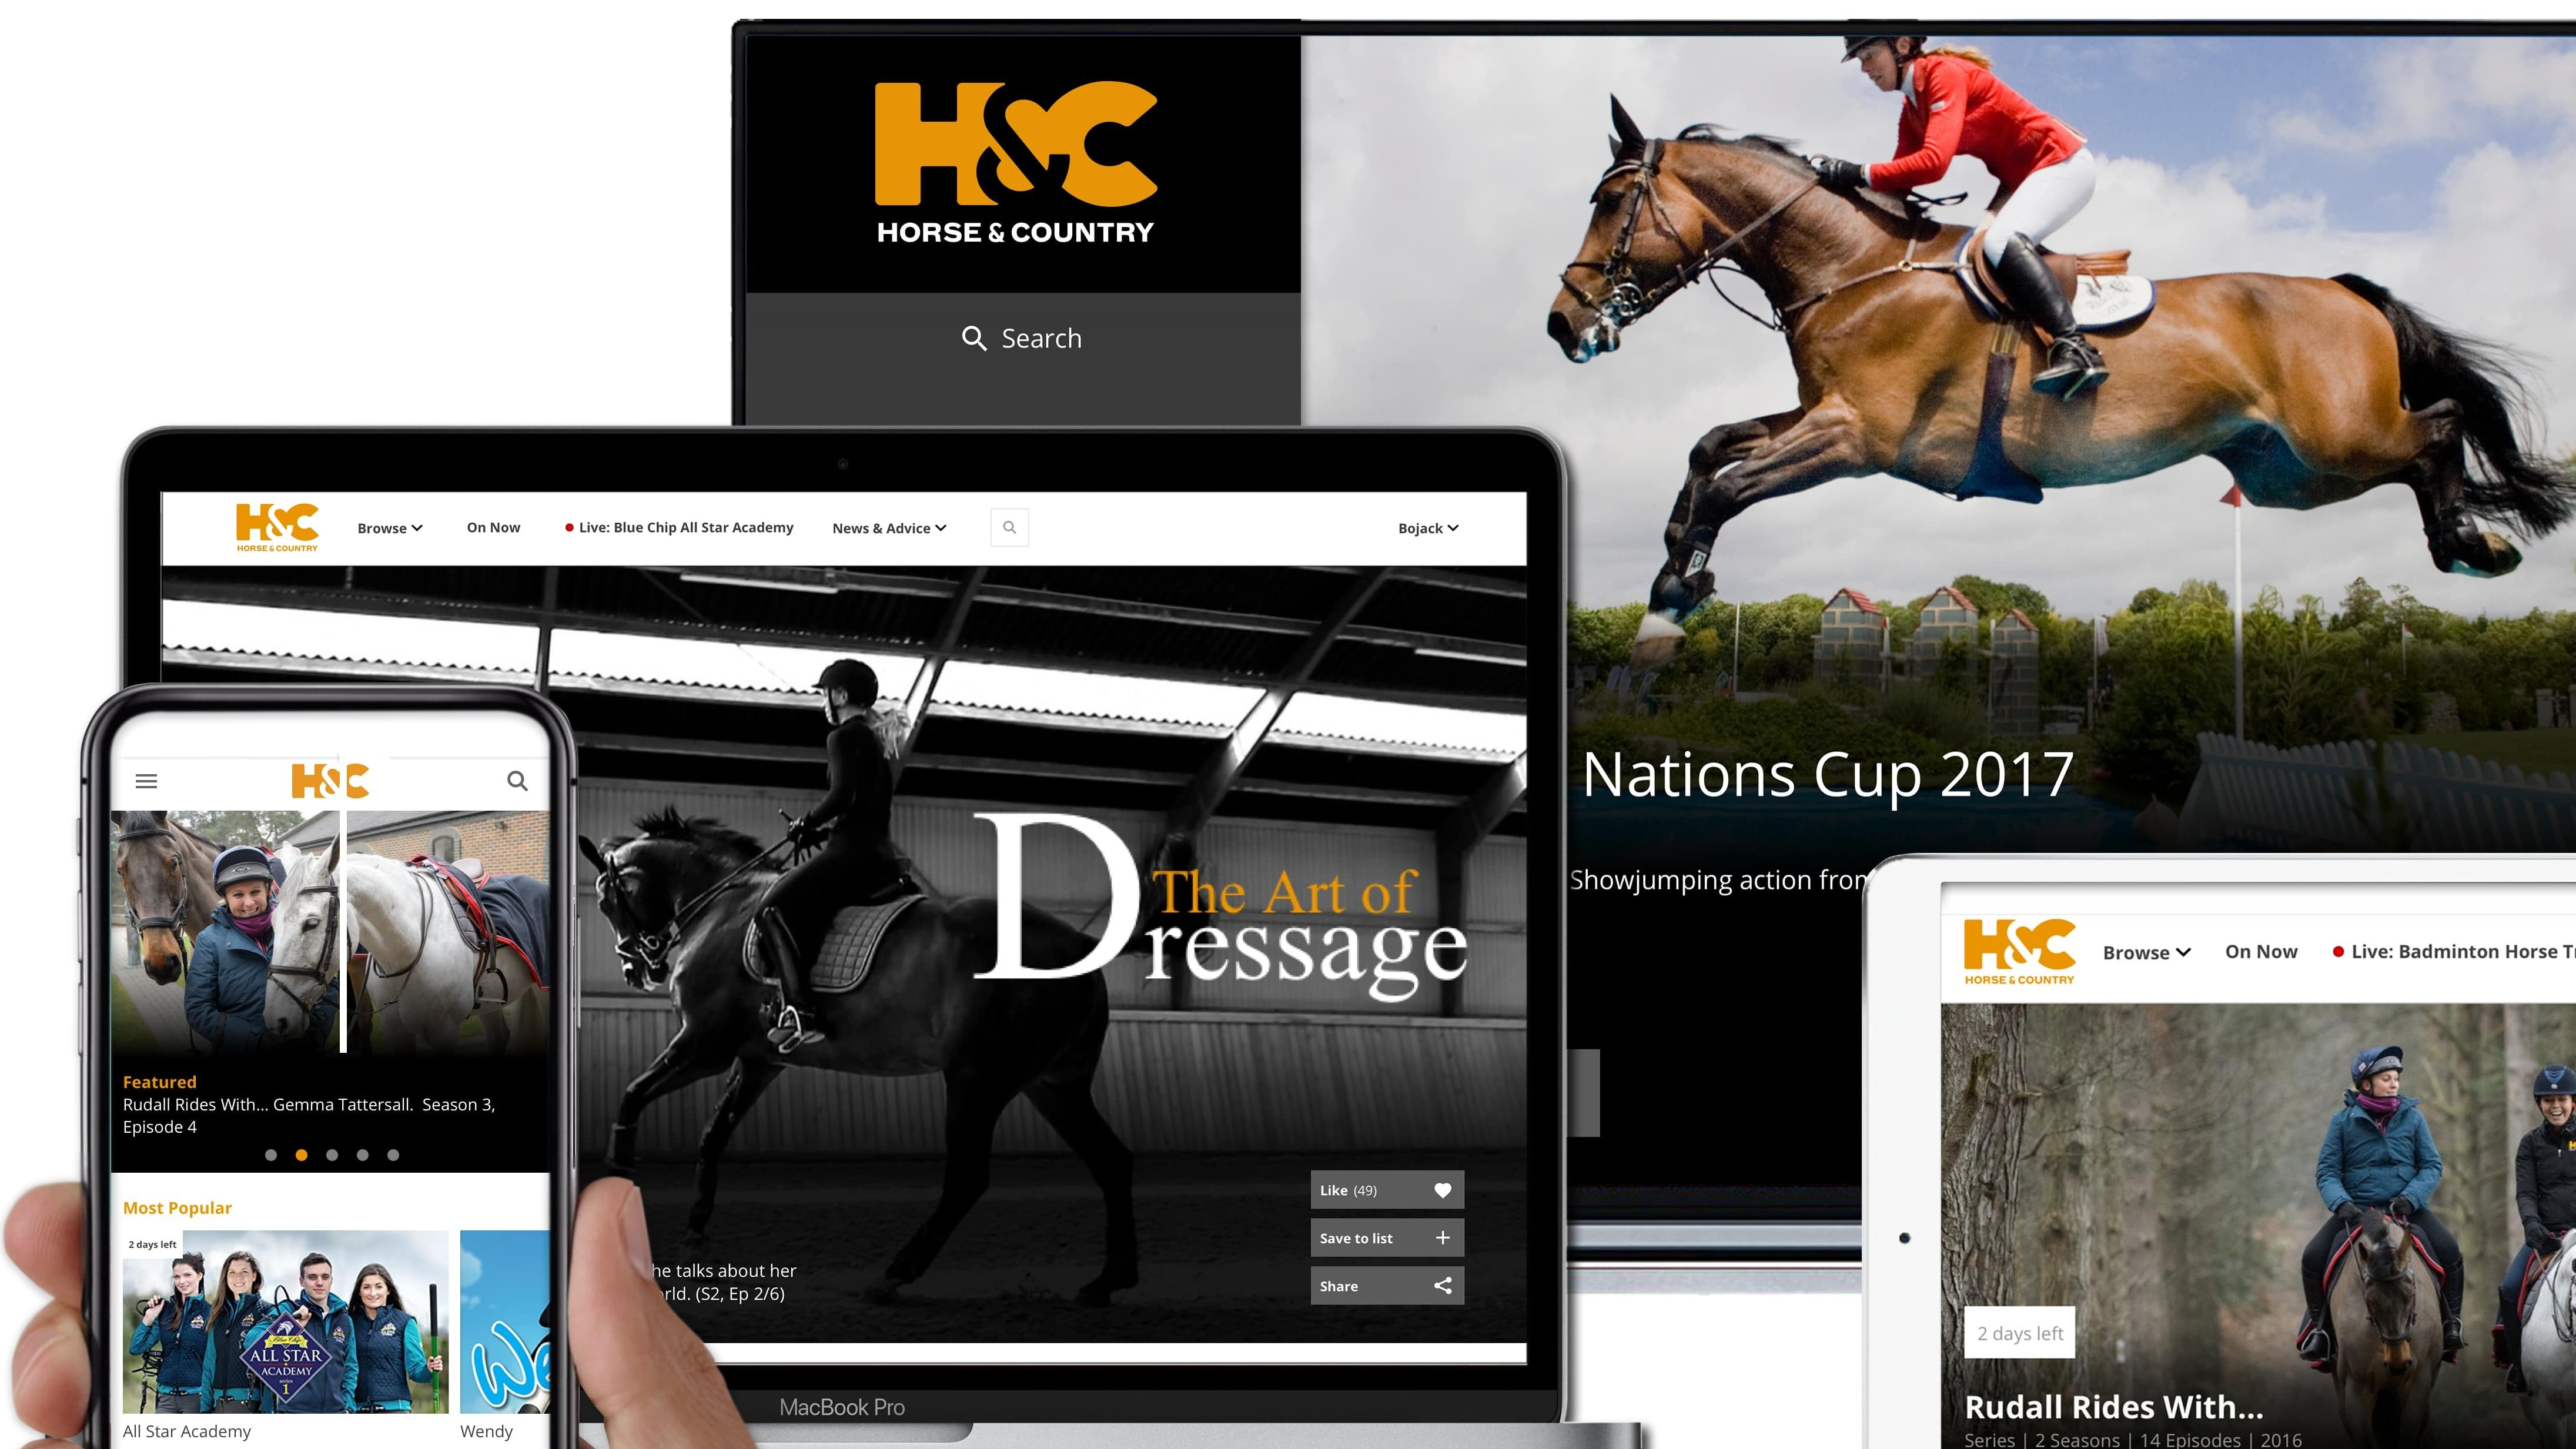 Equestrian Channel H&C Gallops into the U.S. (EXCLUSIVE)